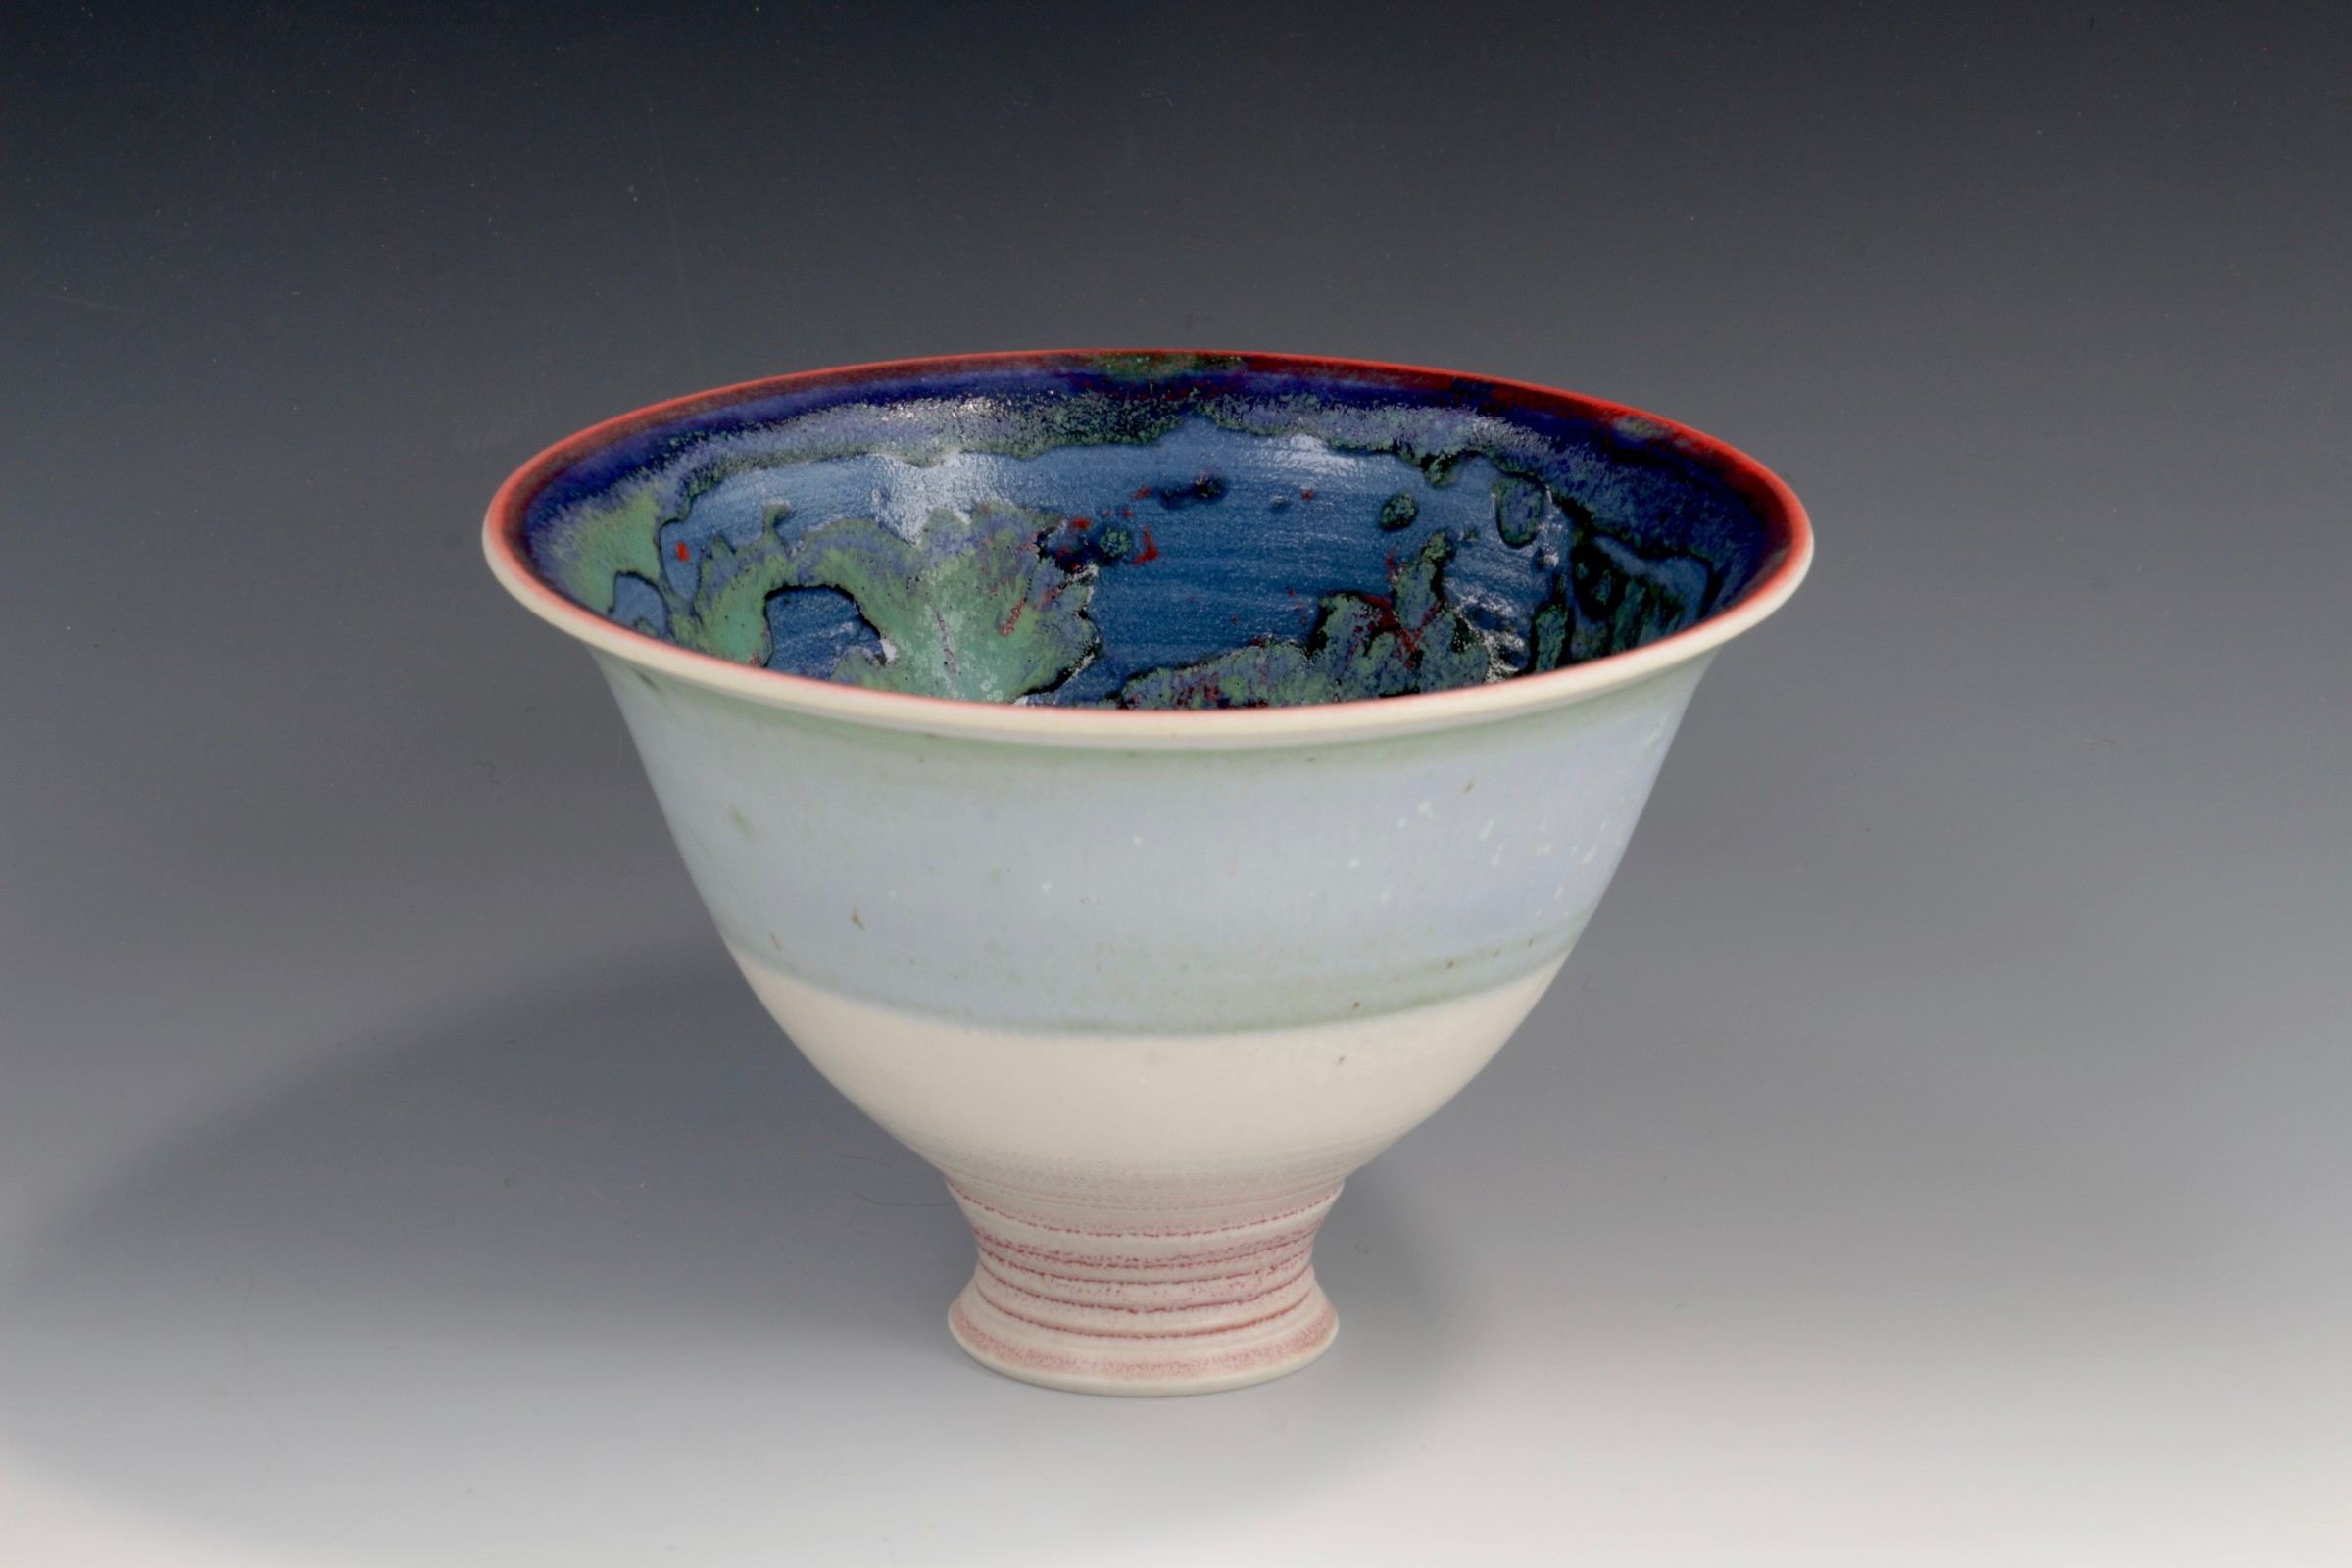 "<span class=""link fancybox-details-link""><a href=""/artists/61-geoffrey-swindell/works/6898-geoffrey-swindell-bowl-2020/"">View Detail Page</a></span><div class=""artist""><strong>Geoffrey Swindell</strong></div> <div class=""title""><em>Bowl</em>, 2020</div> <div class=""medium"">Porcelain</div><div class=""price"">£145.00</div><div class=""copyright_line"">Own Art: £ 14.50 x 10 Months, 0% APR</div>"